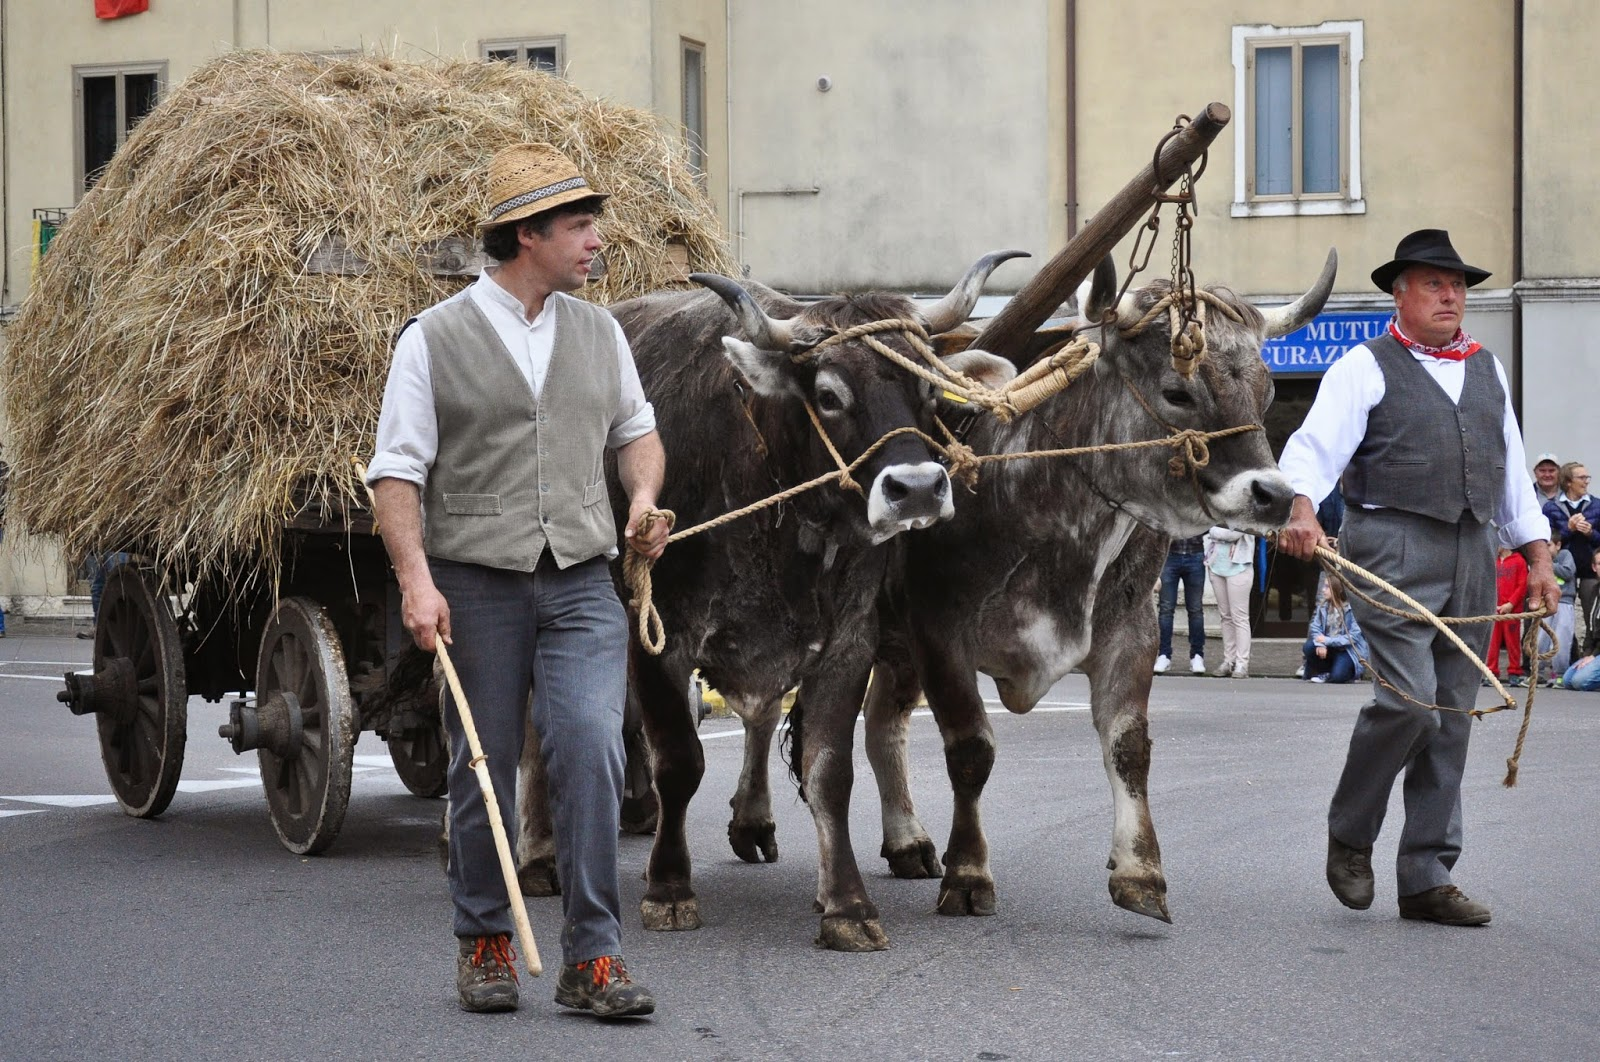 The bulls cart at the Parade, Donkey Race, Romano d'Ezzelino, Veneto, Italy-2